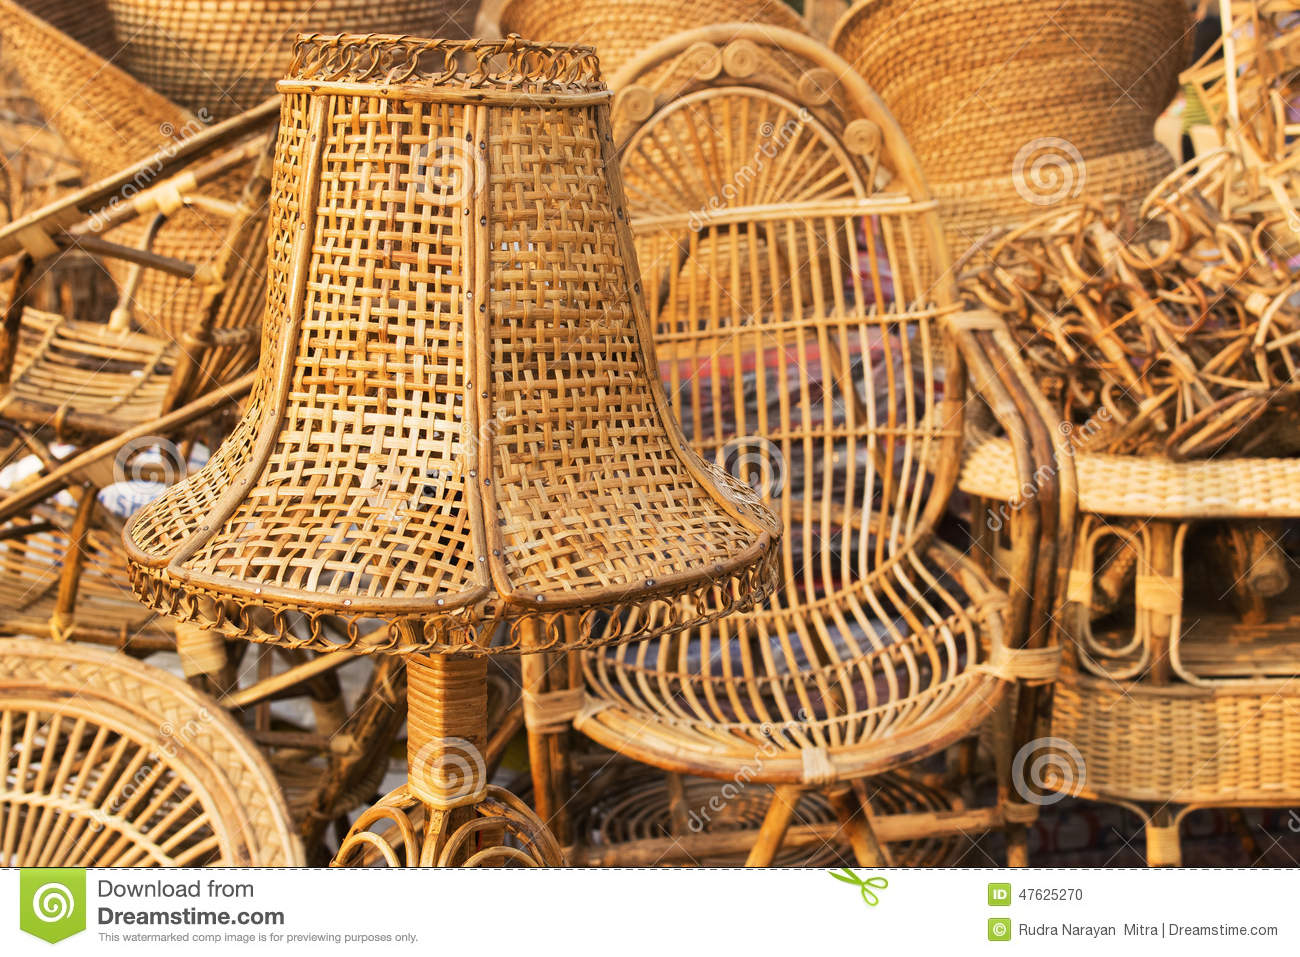 Bamboo Chair Cane Furnitures Indian Handicrafts Fair Editorial Image